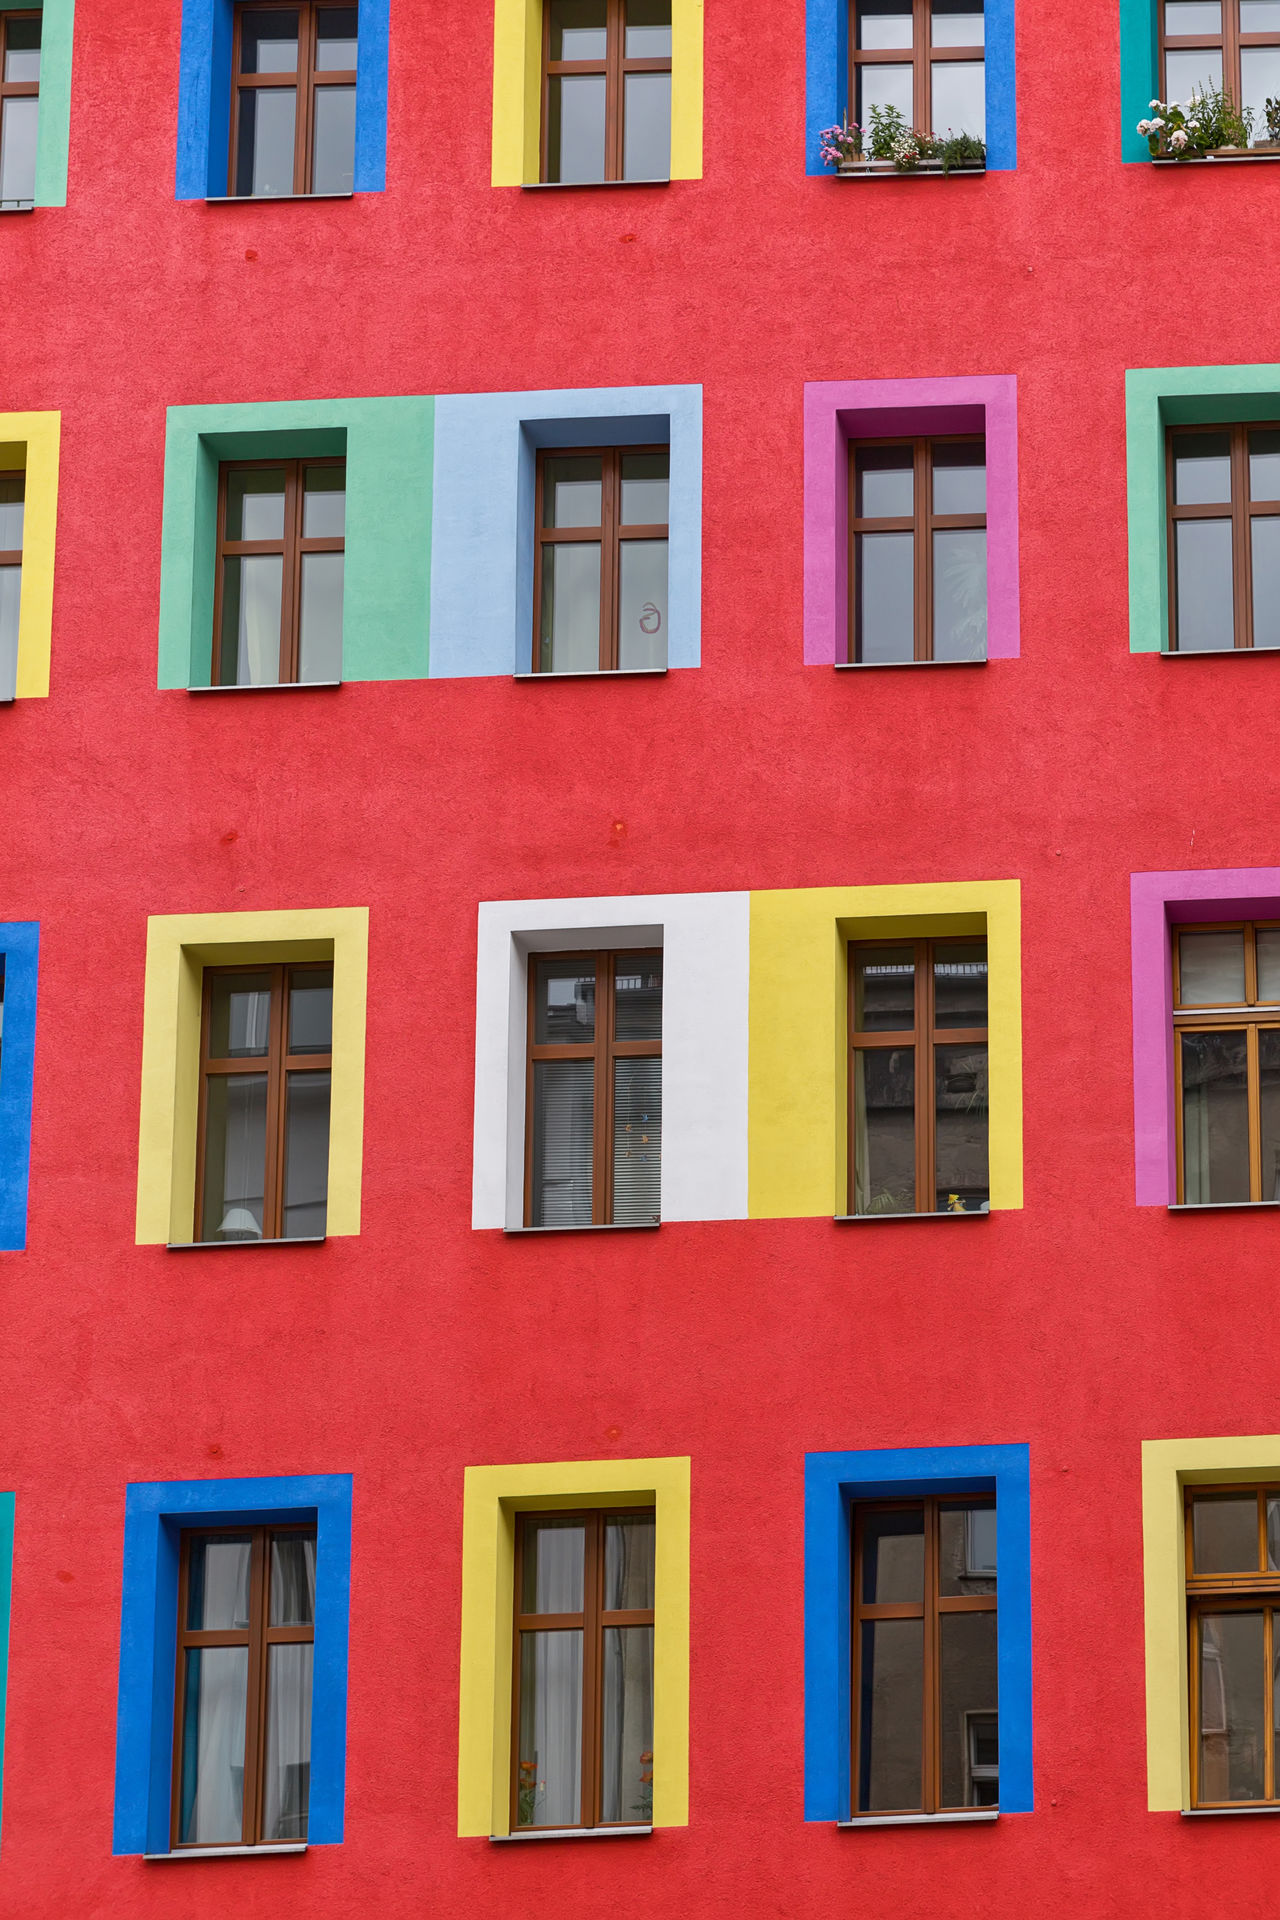 Red rendered facade of an aparemtent building. Each window is painted in bright colours to give a colourful look to the city Architecture Architecture Backgrounds Building Exterior Built Structure City Colourful Day Facade Building Facade Detail Facades Façade Full Frame Multi Colored No People Outdoors Red Red Residential  Residential Building Window